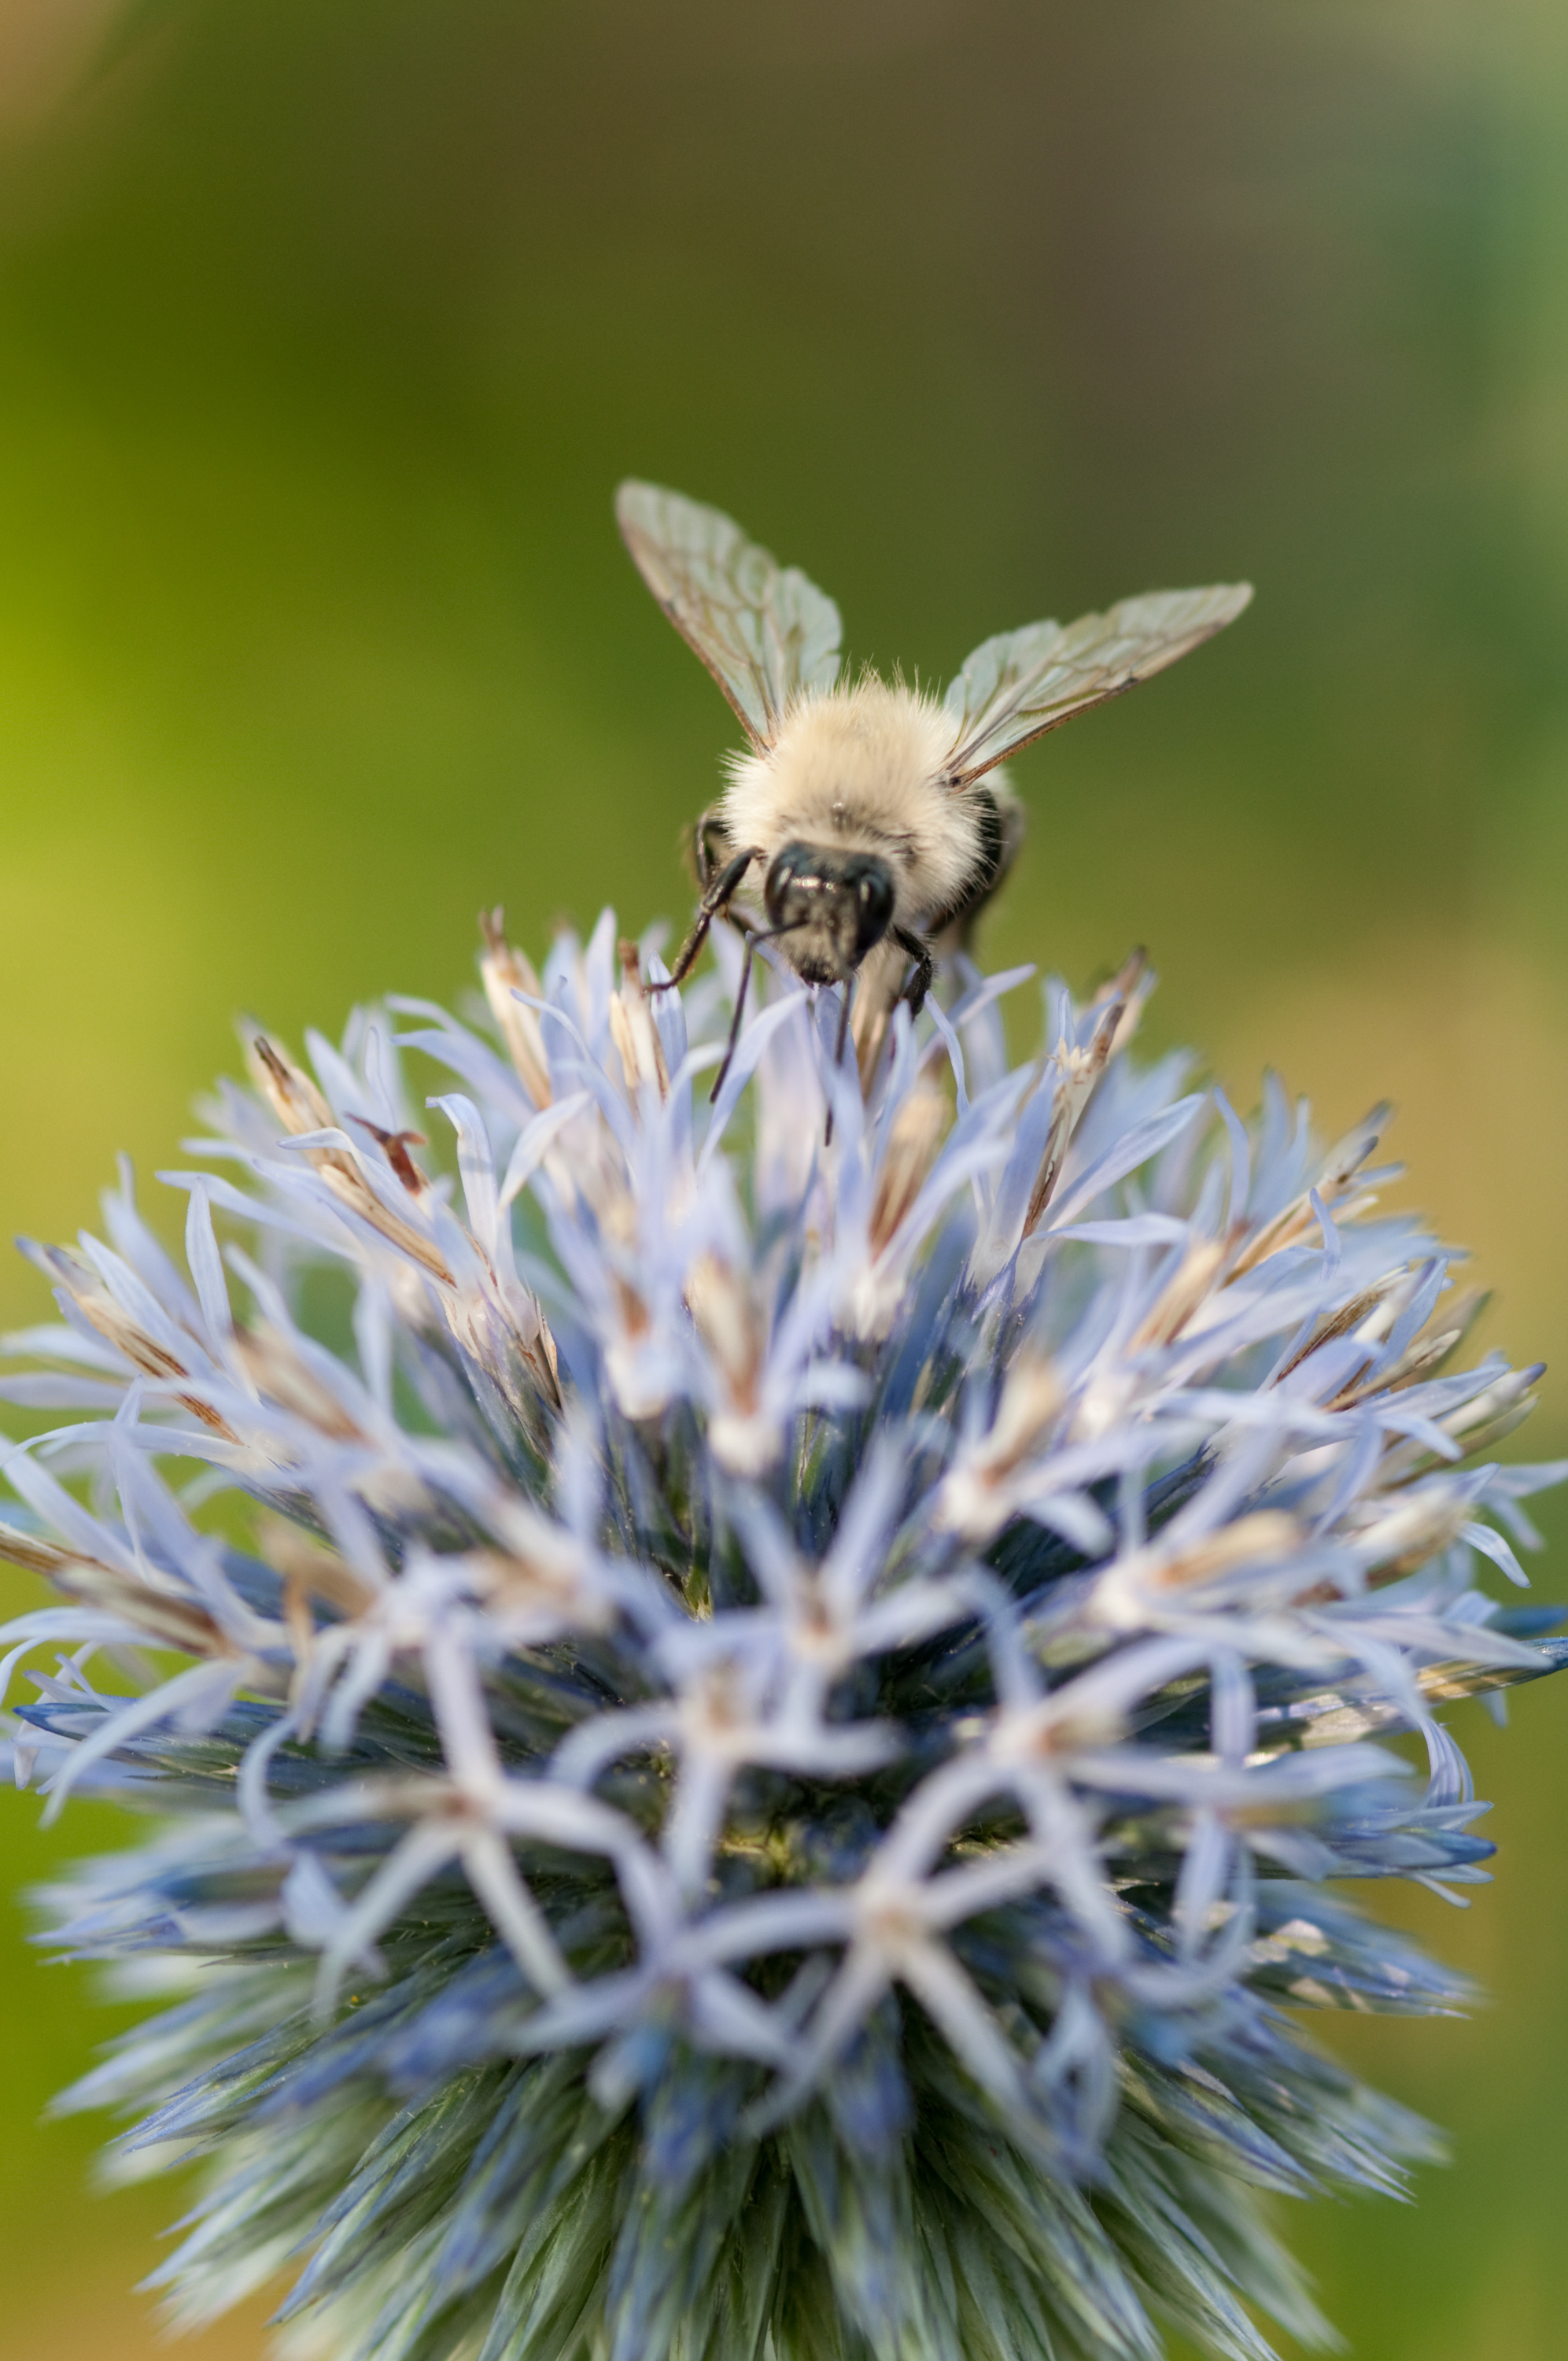 Photo Credit Edwin Remsberg (the author does not profess that the bee pictured is a rusty patch bumble bee)